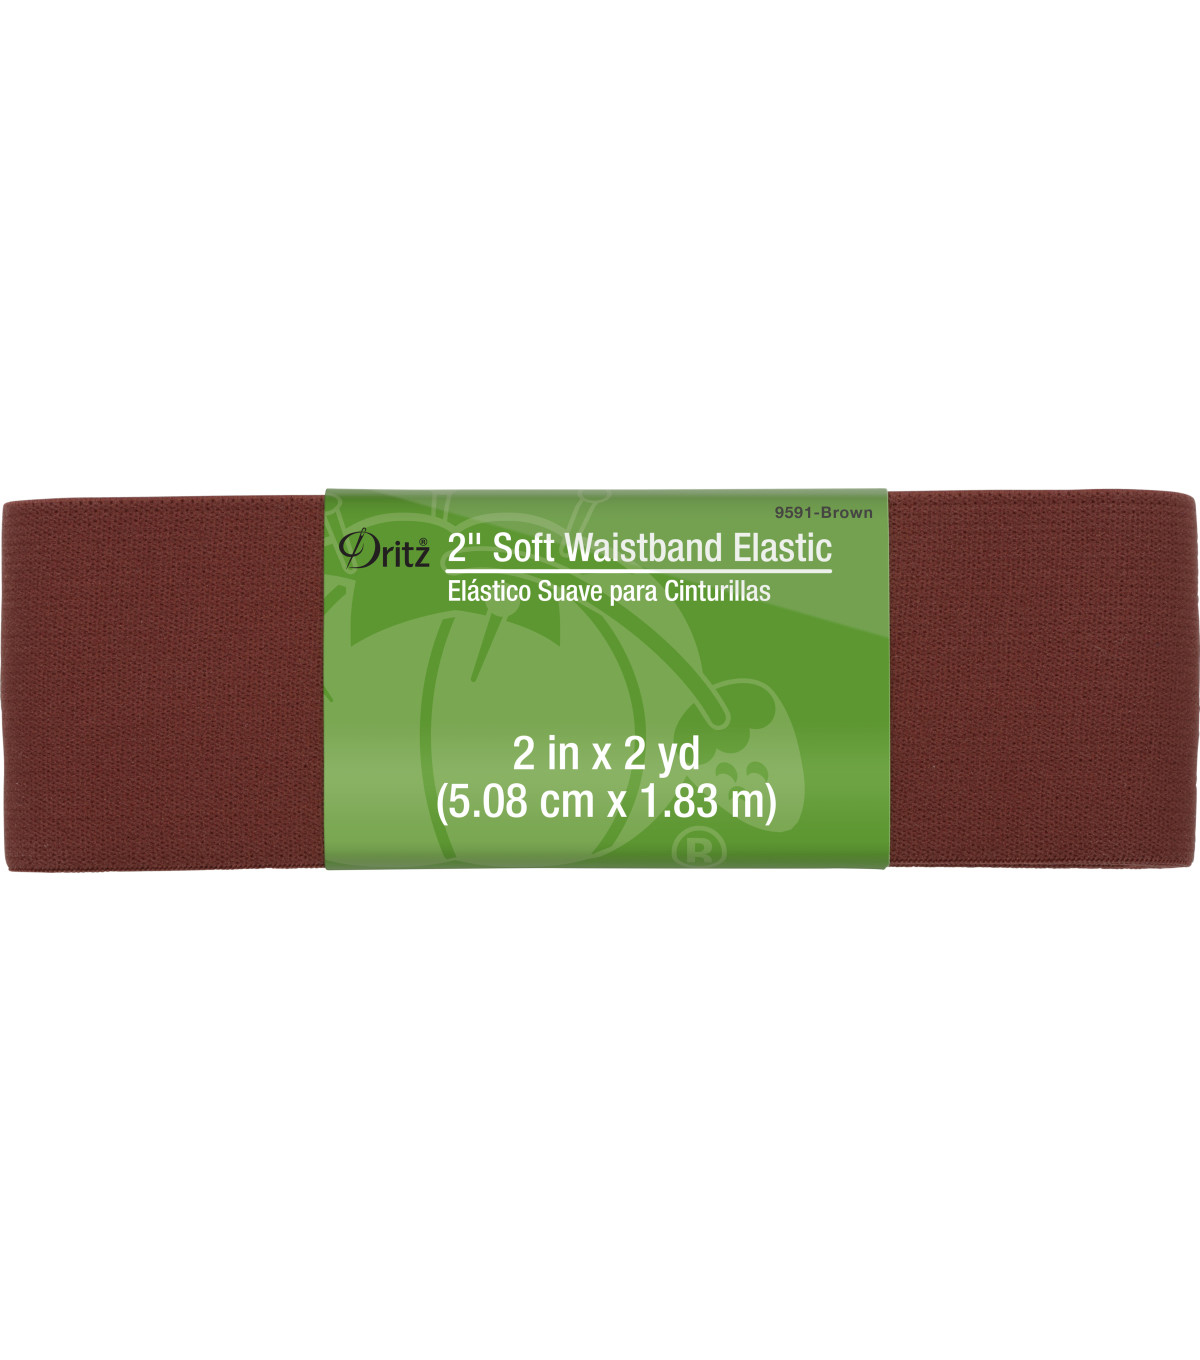 Dritz® 2'' Soft Waistband Elastic-Brown